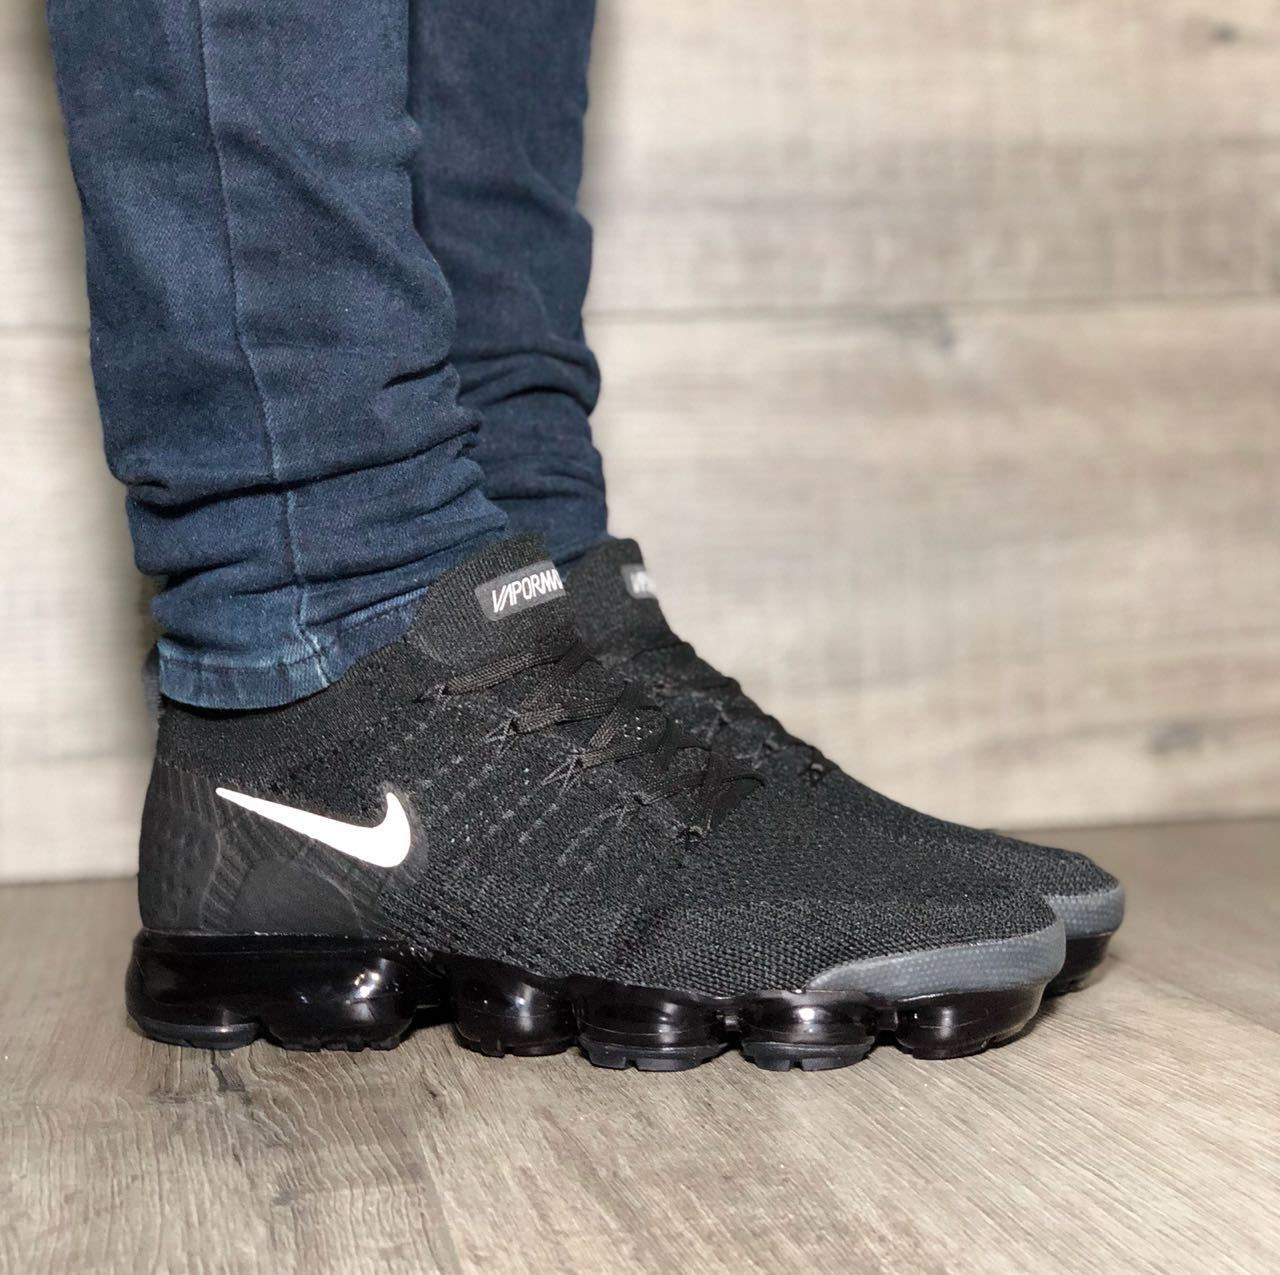 hot sale online f7656 94a34 Zapatillas nike vapormax 2018